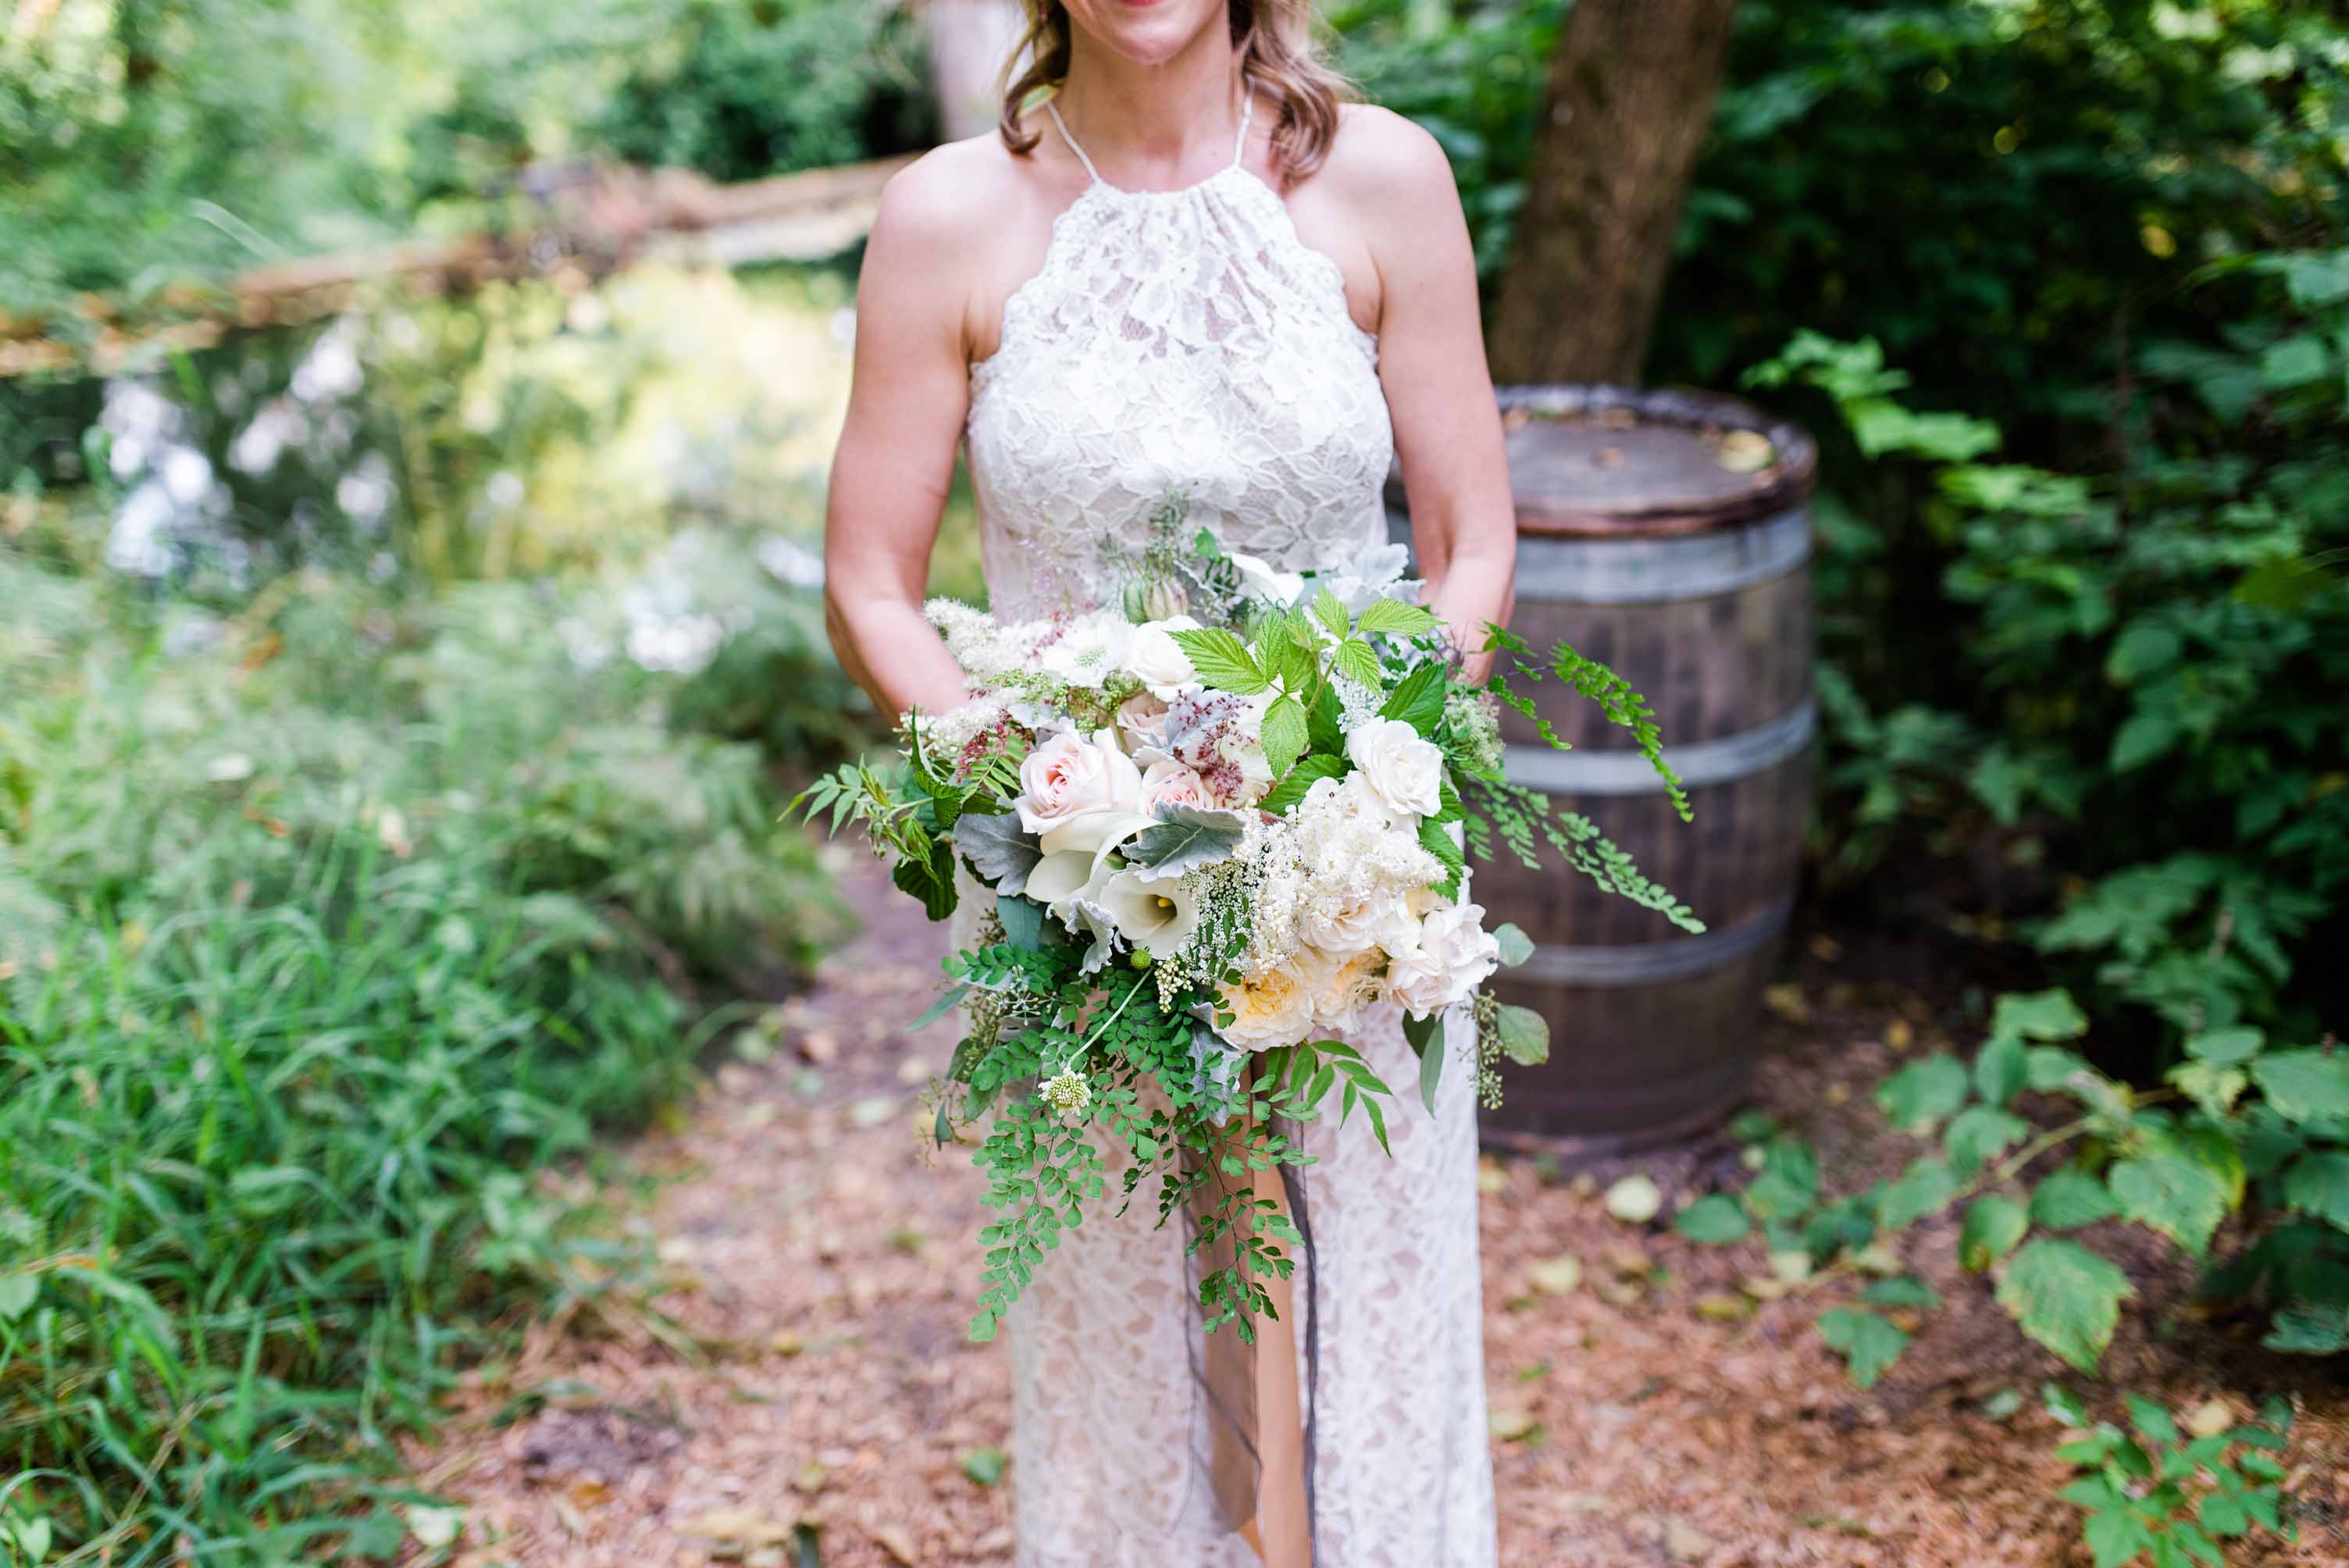 NW garden bouquet of ivory roses and maidenhair fern with long trailing ribbons